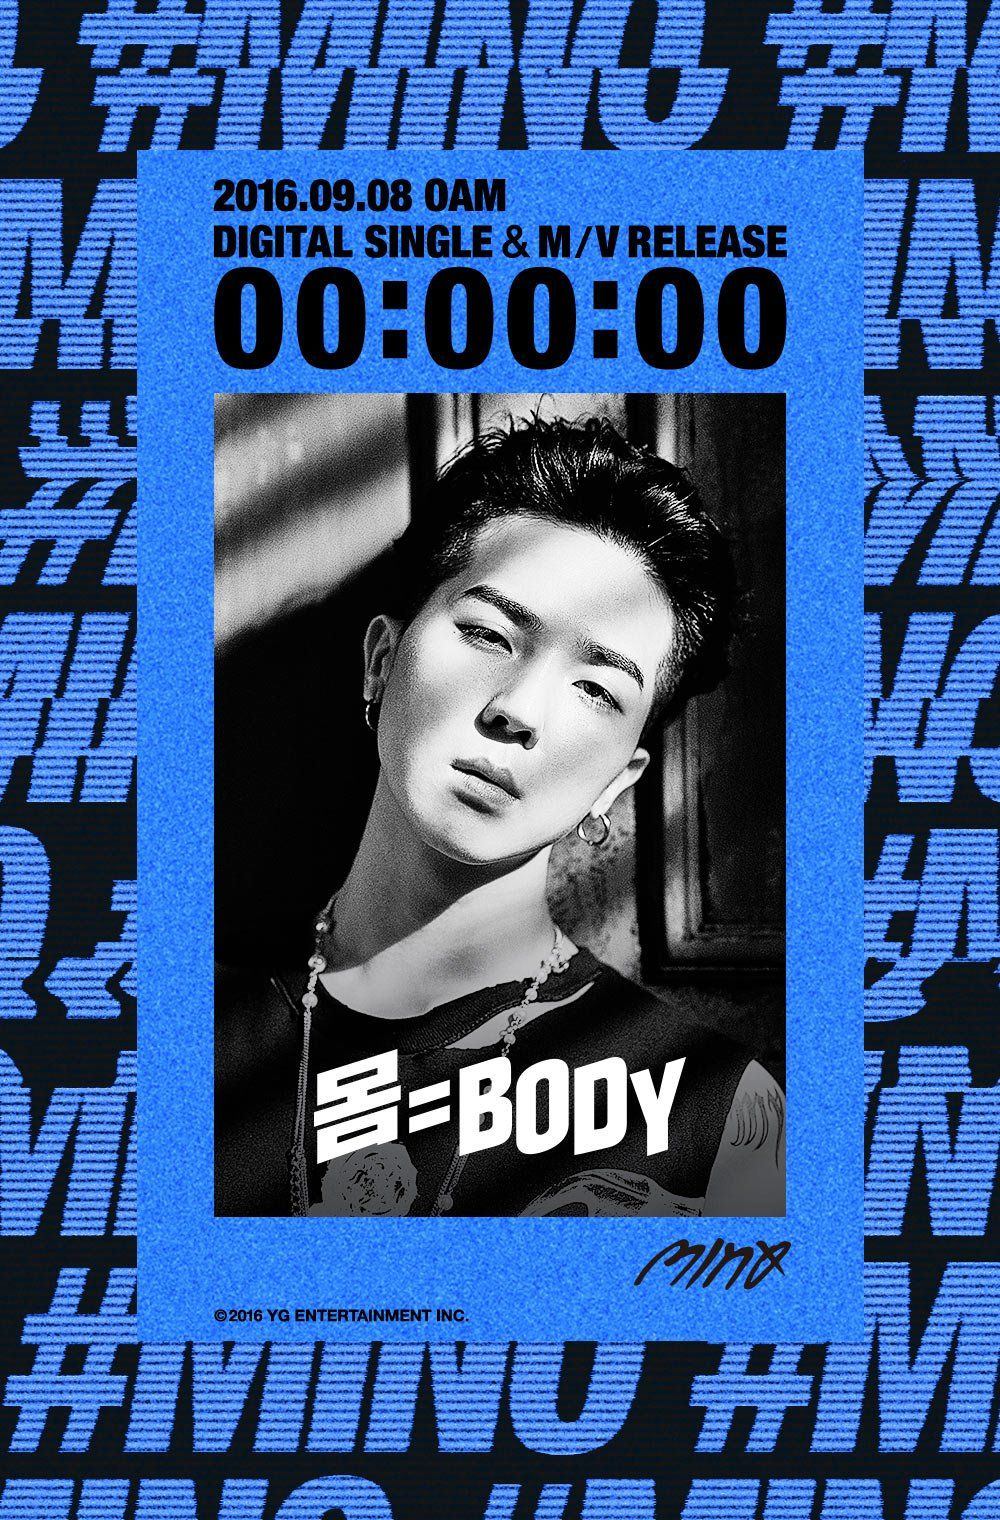 "YG Family on Twitter: ""[MINO - '몸=BODY' COUNTER] originally posted by https://t.co/XZQ3IOZLby #송민호 #미노 #마이노 #송다정 #DIGITALSINGLE #MV #0AM https://t.co/3m4FZtBlmJ"""